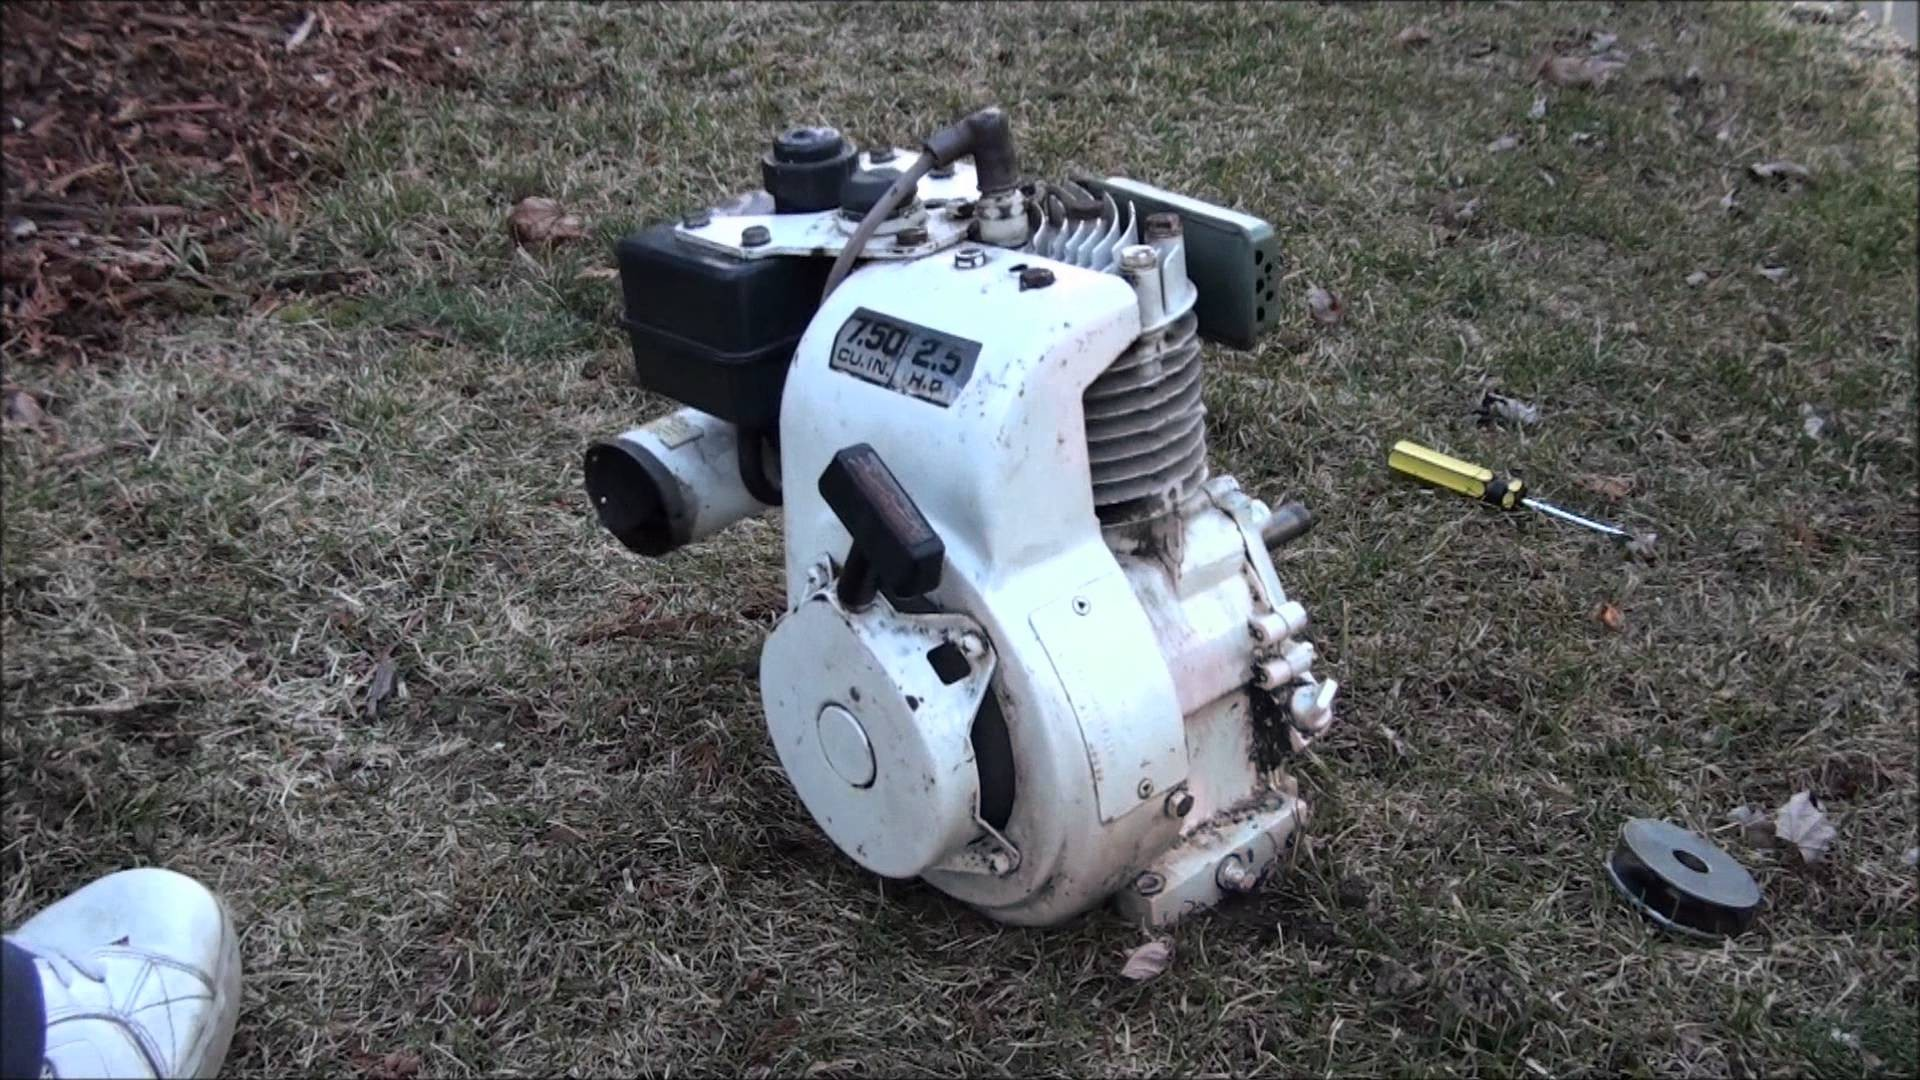 Tecumseh 6 5 Hp Engine Diagram 5hp Parts Joseph J Nemes Sons Engines Of Related Post